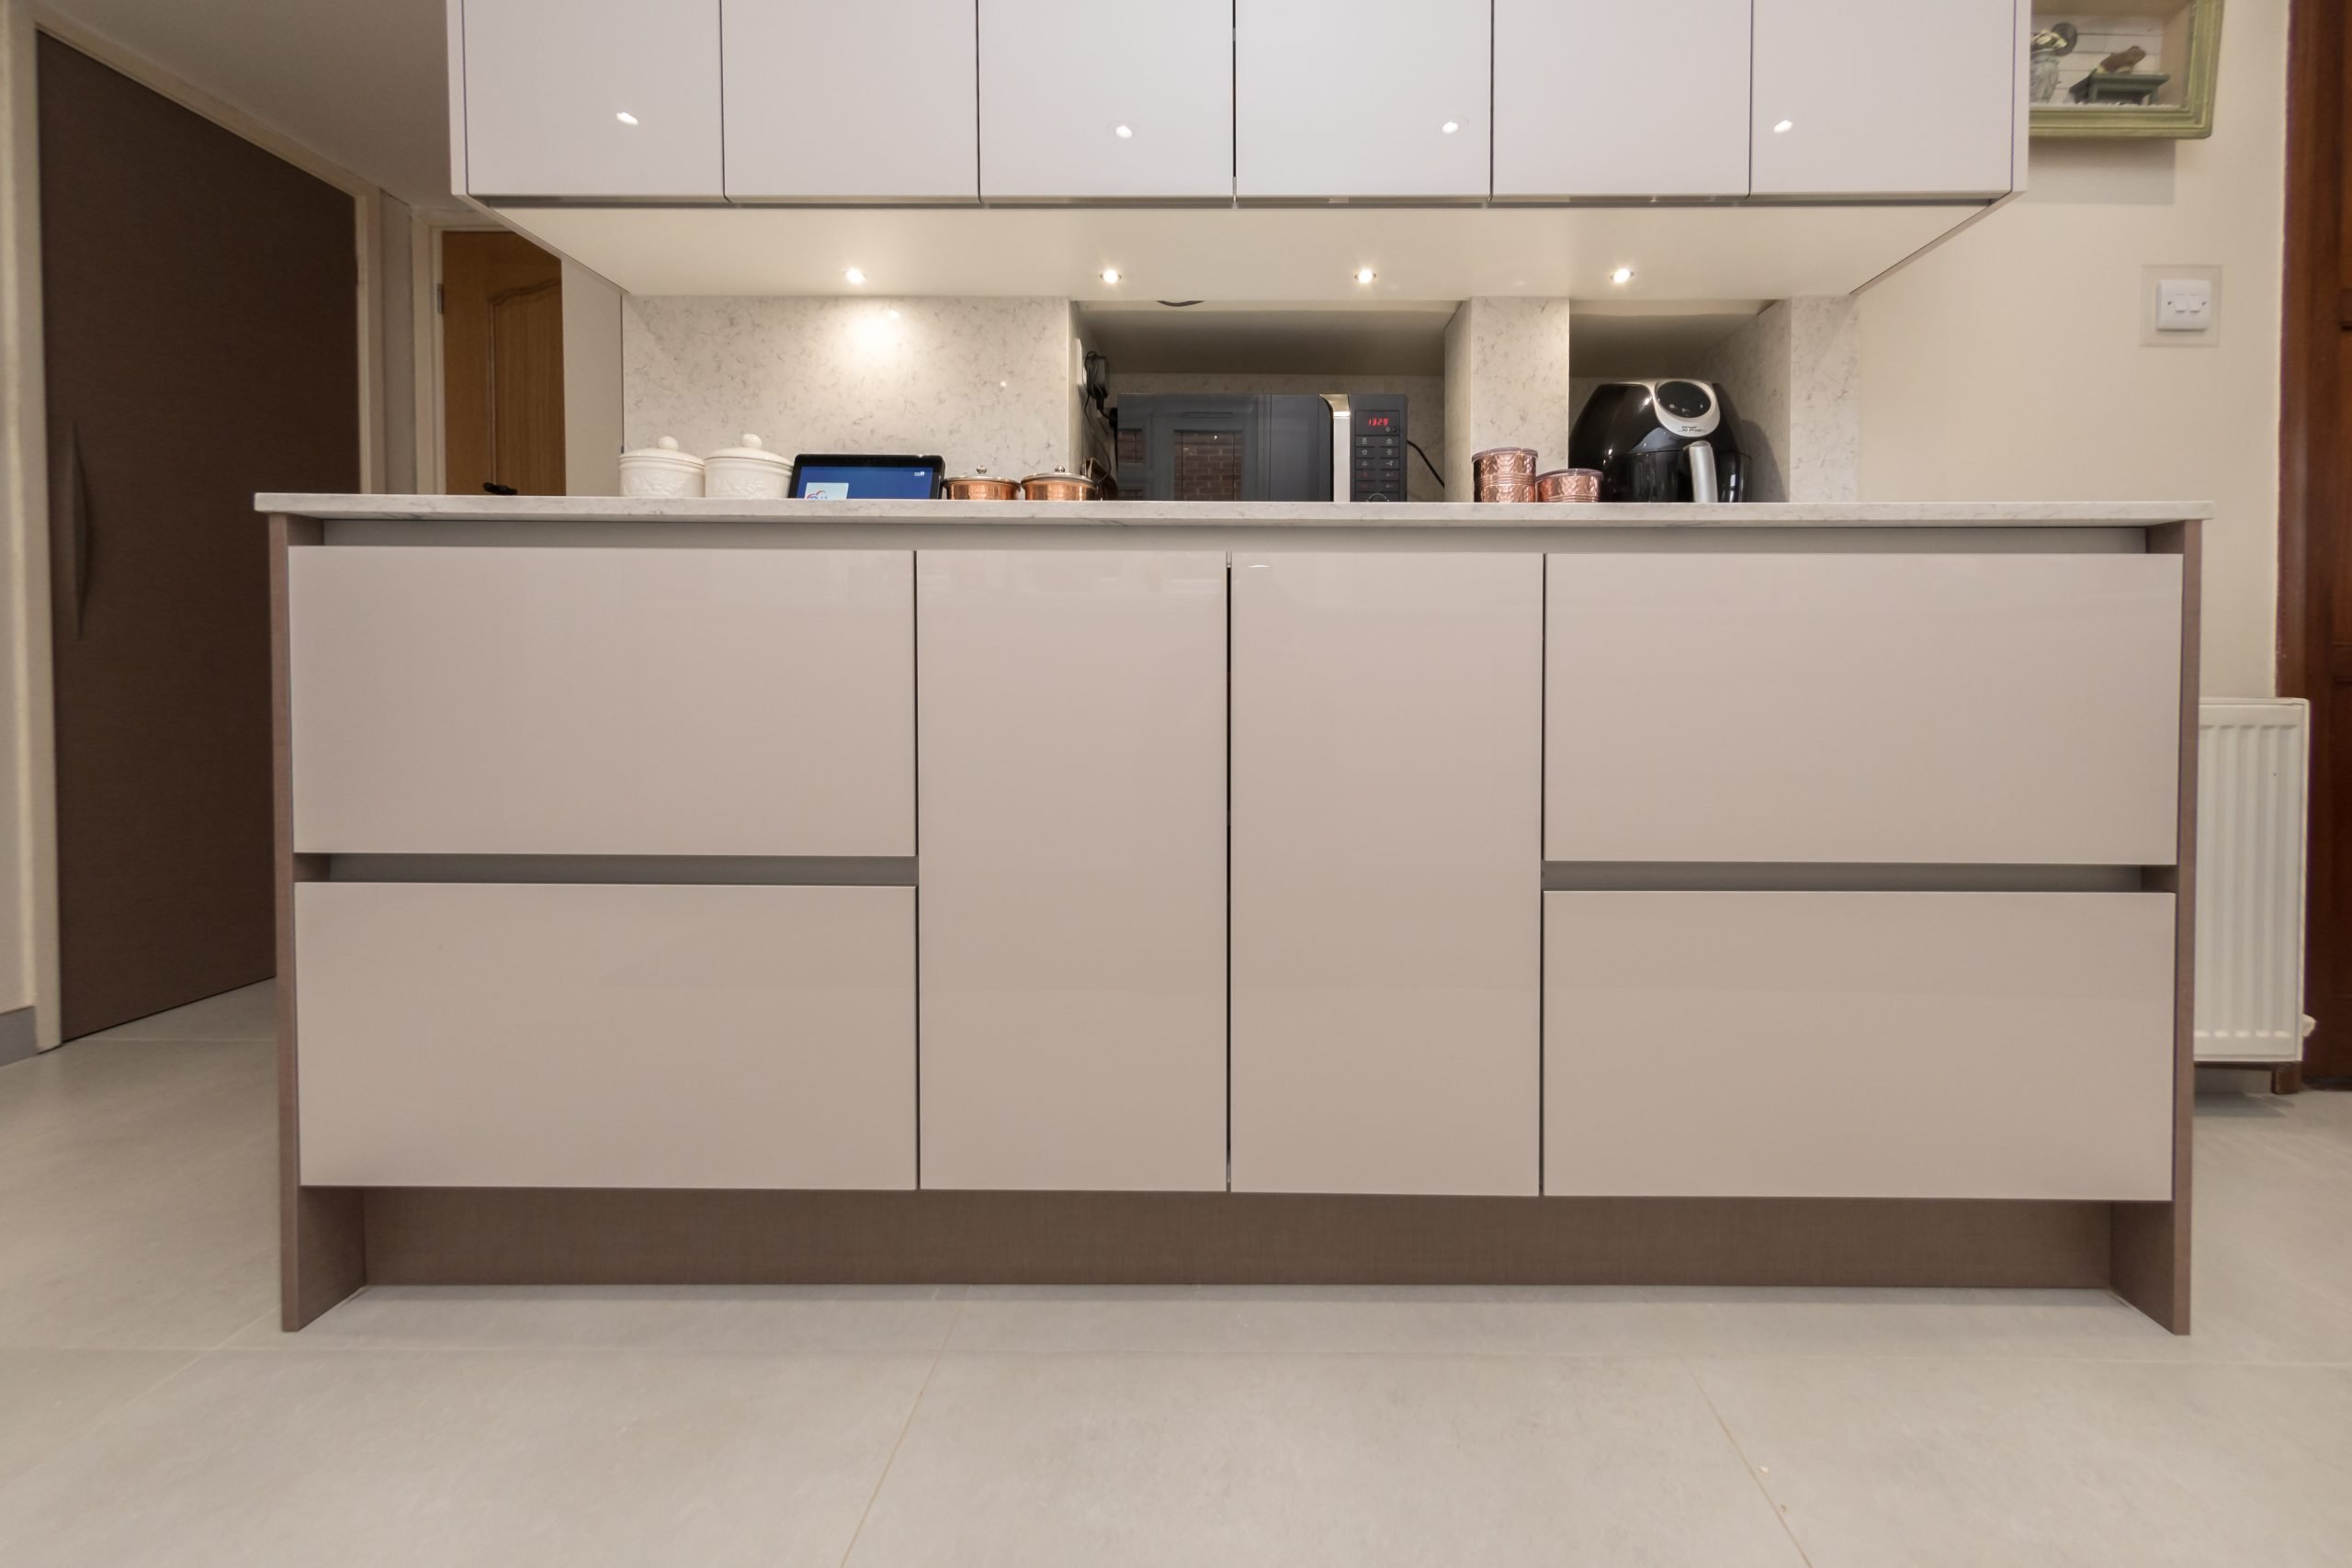 Bespoke Kitchen Moor Park Cashmere Lacquered Gloss Reflected Finish